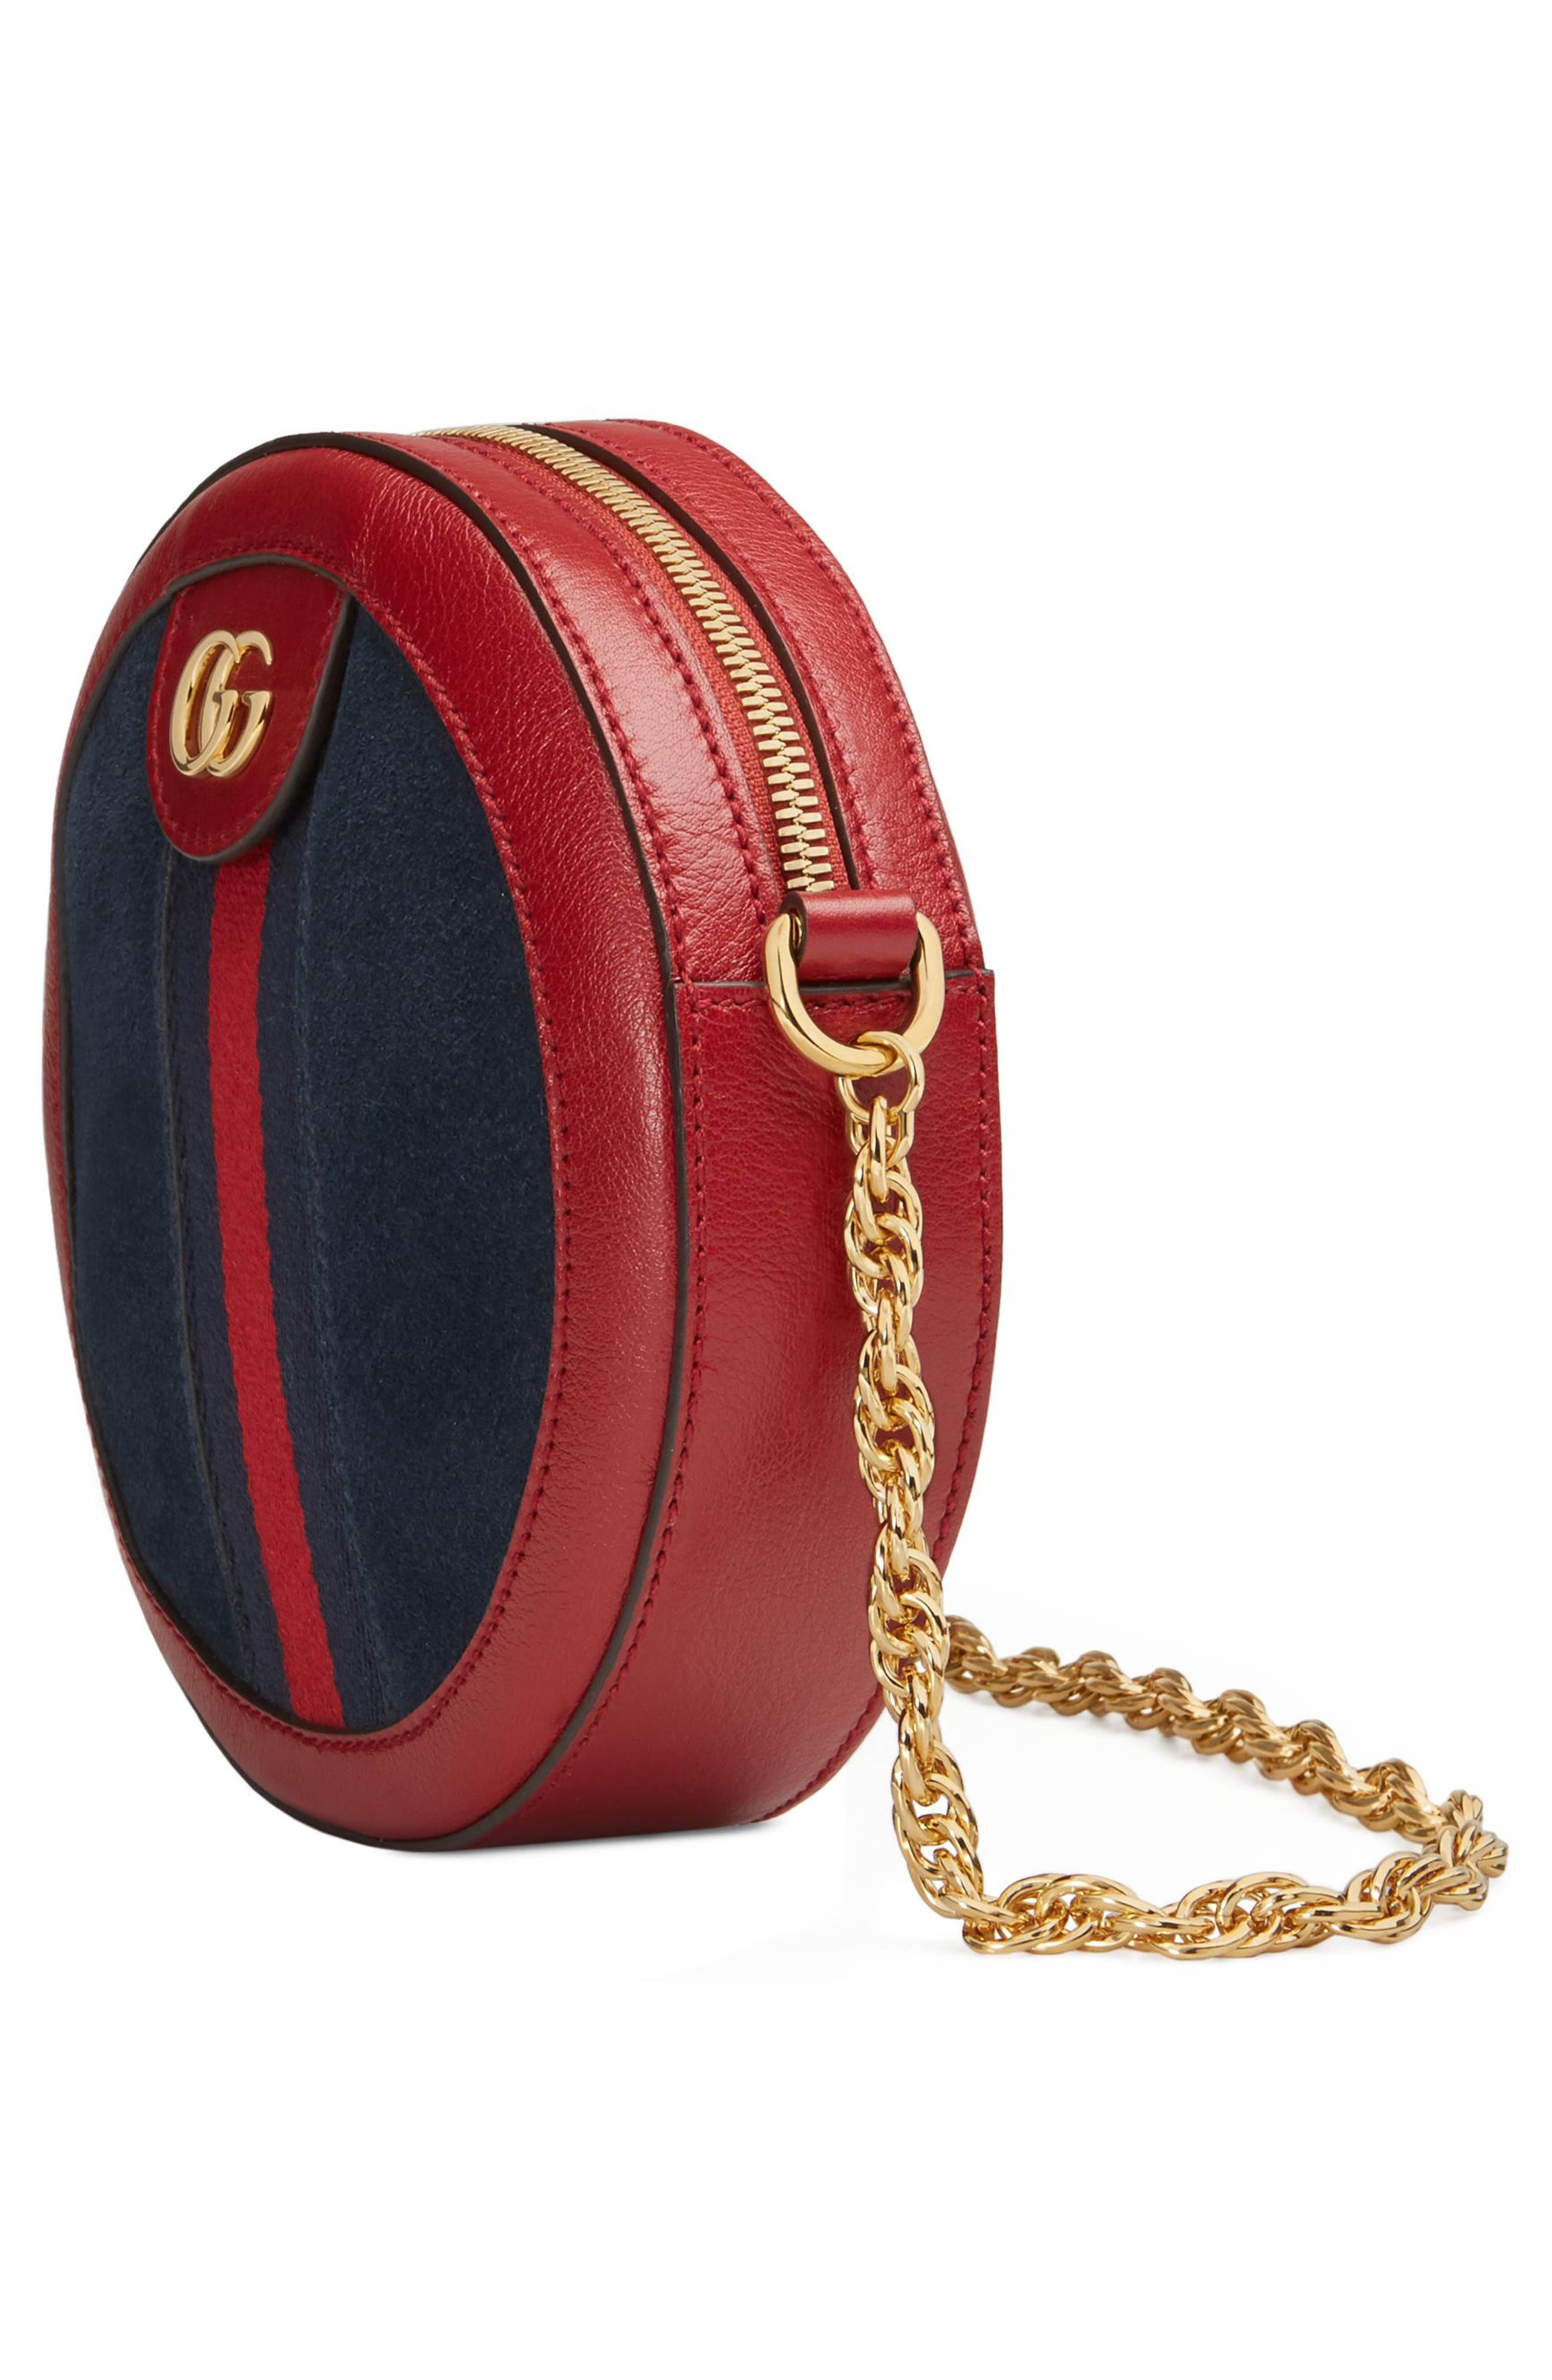 Ophidia Small Suede & Leather Circle Crossbody Bag,                             Alternate thumbnail 4, color,                             NEW BLU/ ROMANTIC CERISE